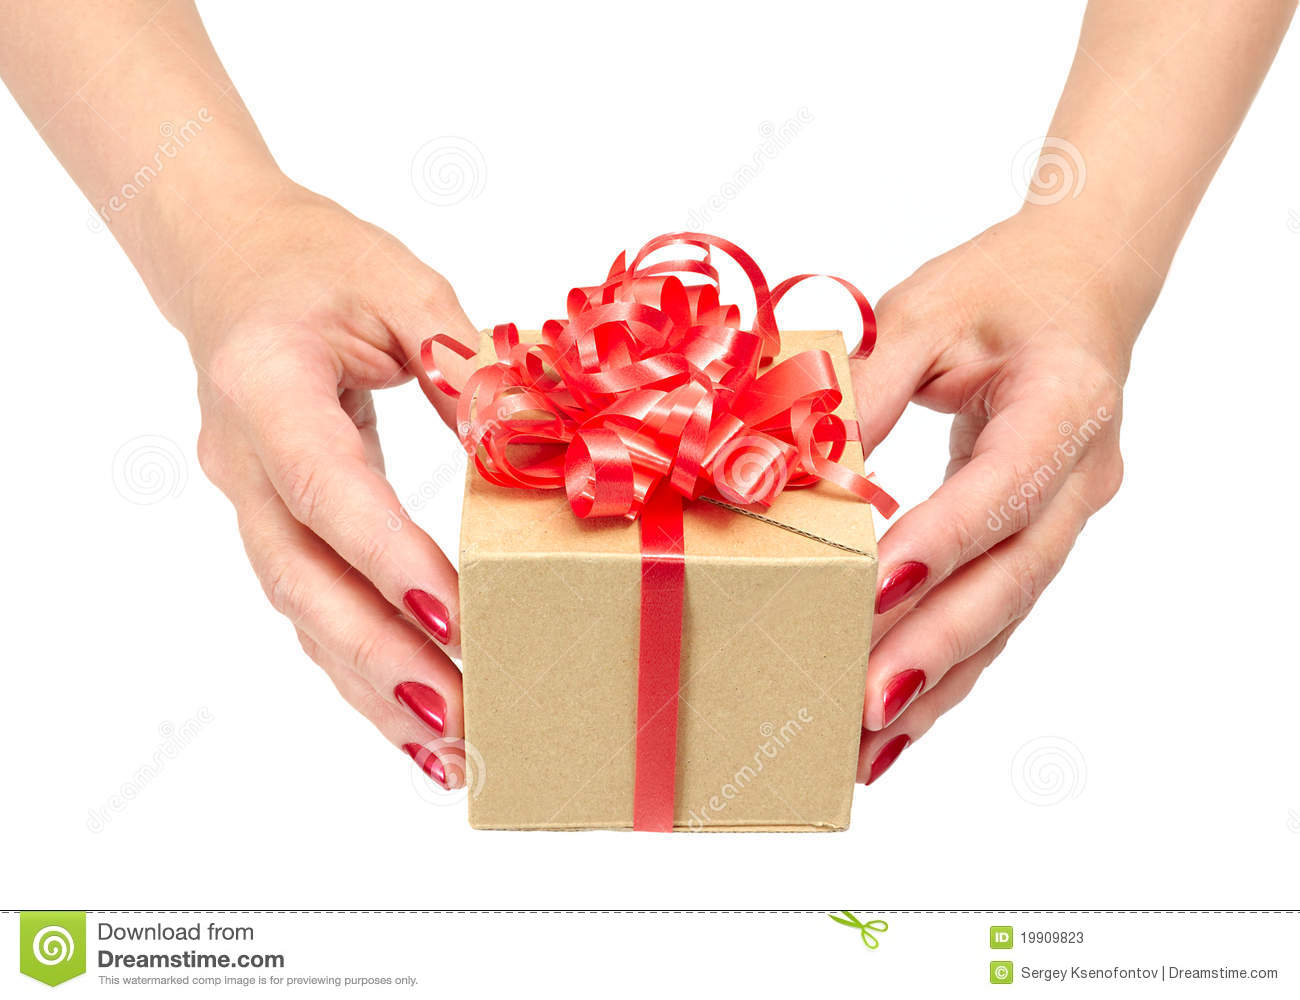 Female Hands Holding Gift Box Stock Photos - Image: 19909823